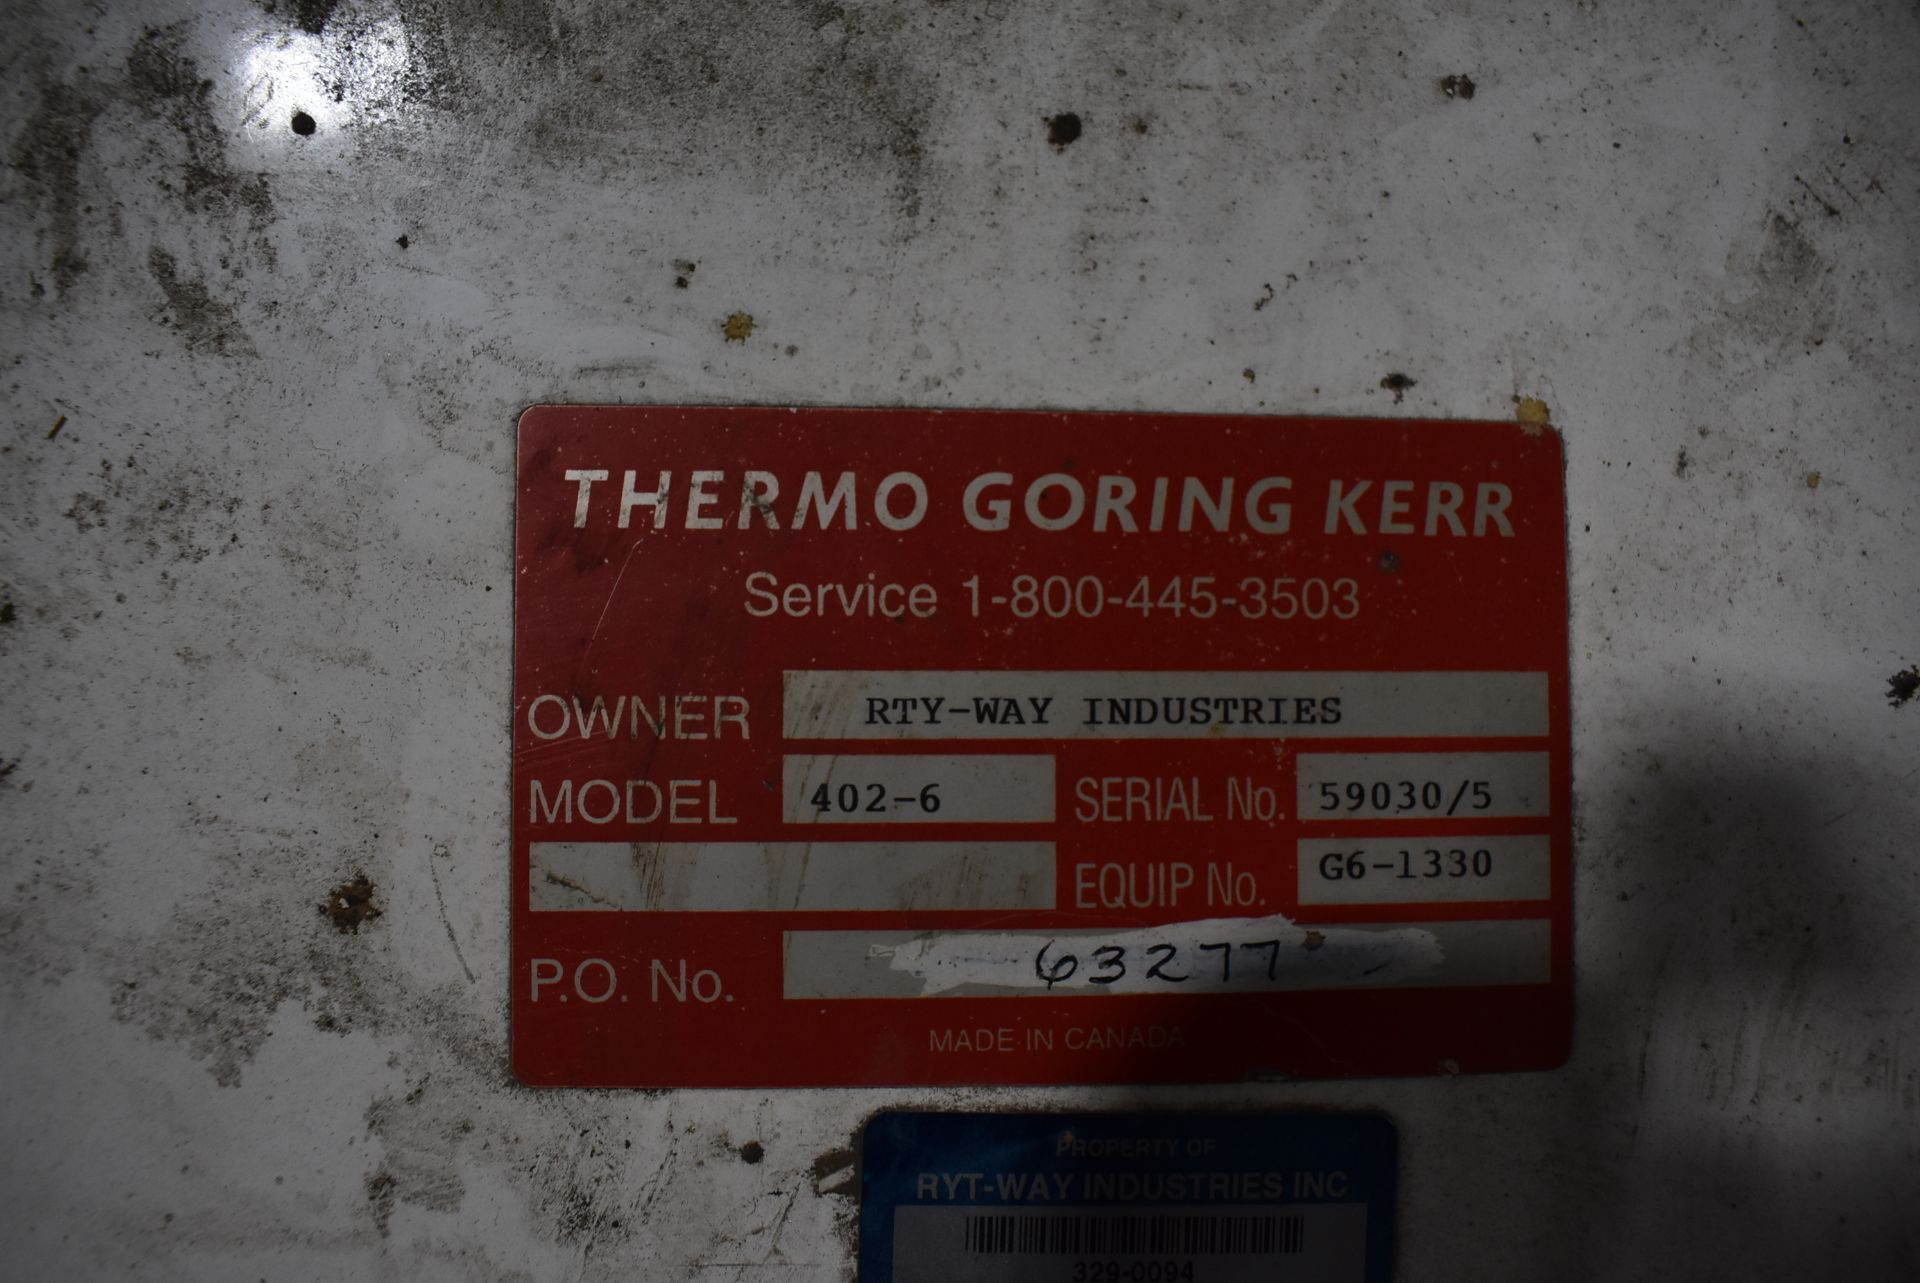 Goring Kerr Model #402-6 Metal Detection System, SS Stand - Image 2 of 3